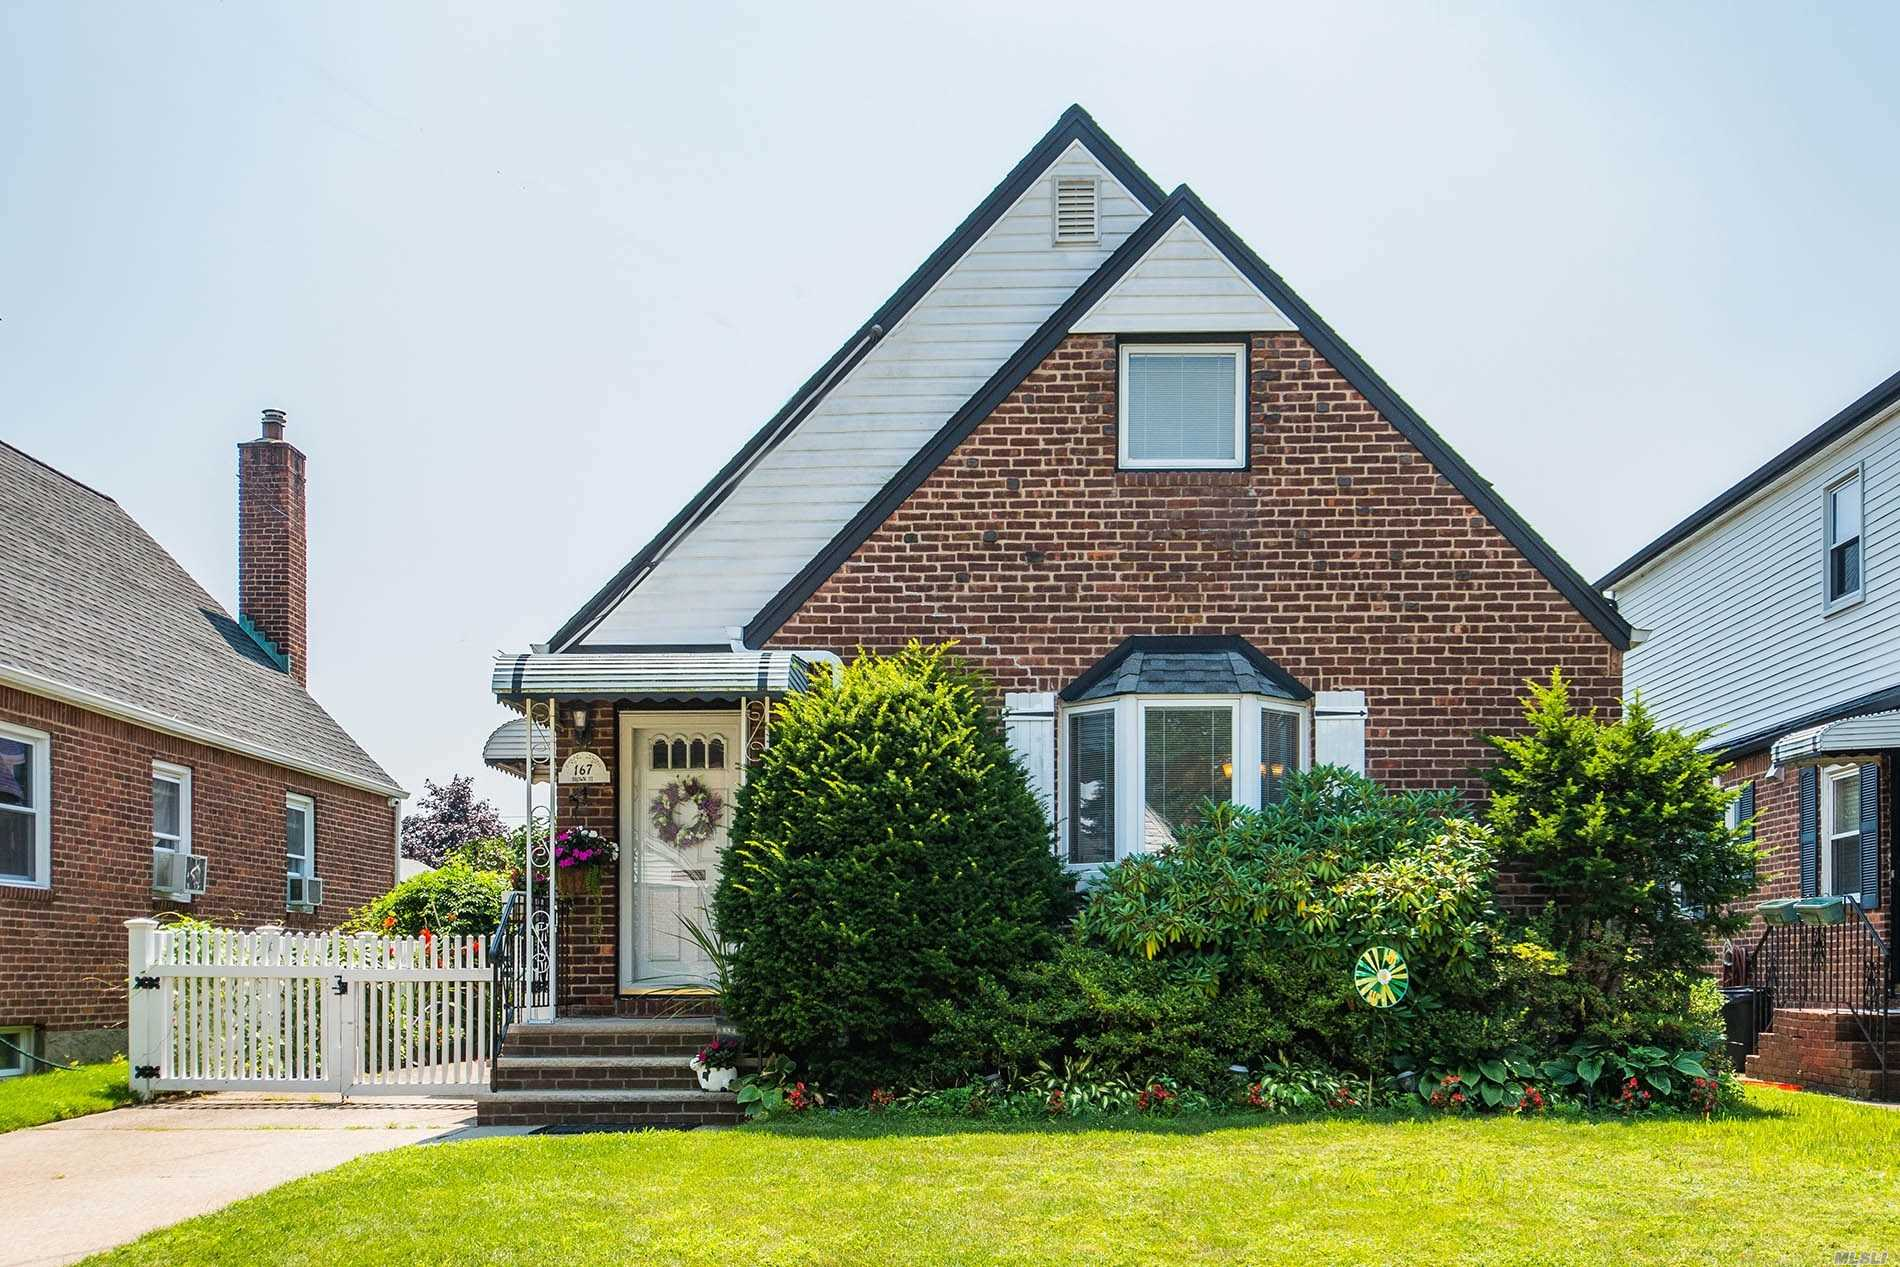 Moving Ready Charming Cape In The Heart Of Mineola, Offering 4-Bedrms, 2-Bathrms, Master On The First Level, 1.5 Car Garage, Gas Heat, Central Air, Hardwood Floors Throughout. Beautiful Fenced Yard With Garden. Close To Lirr & Shopping. E.Williston Sd.